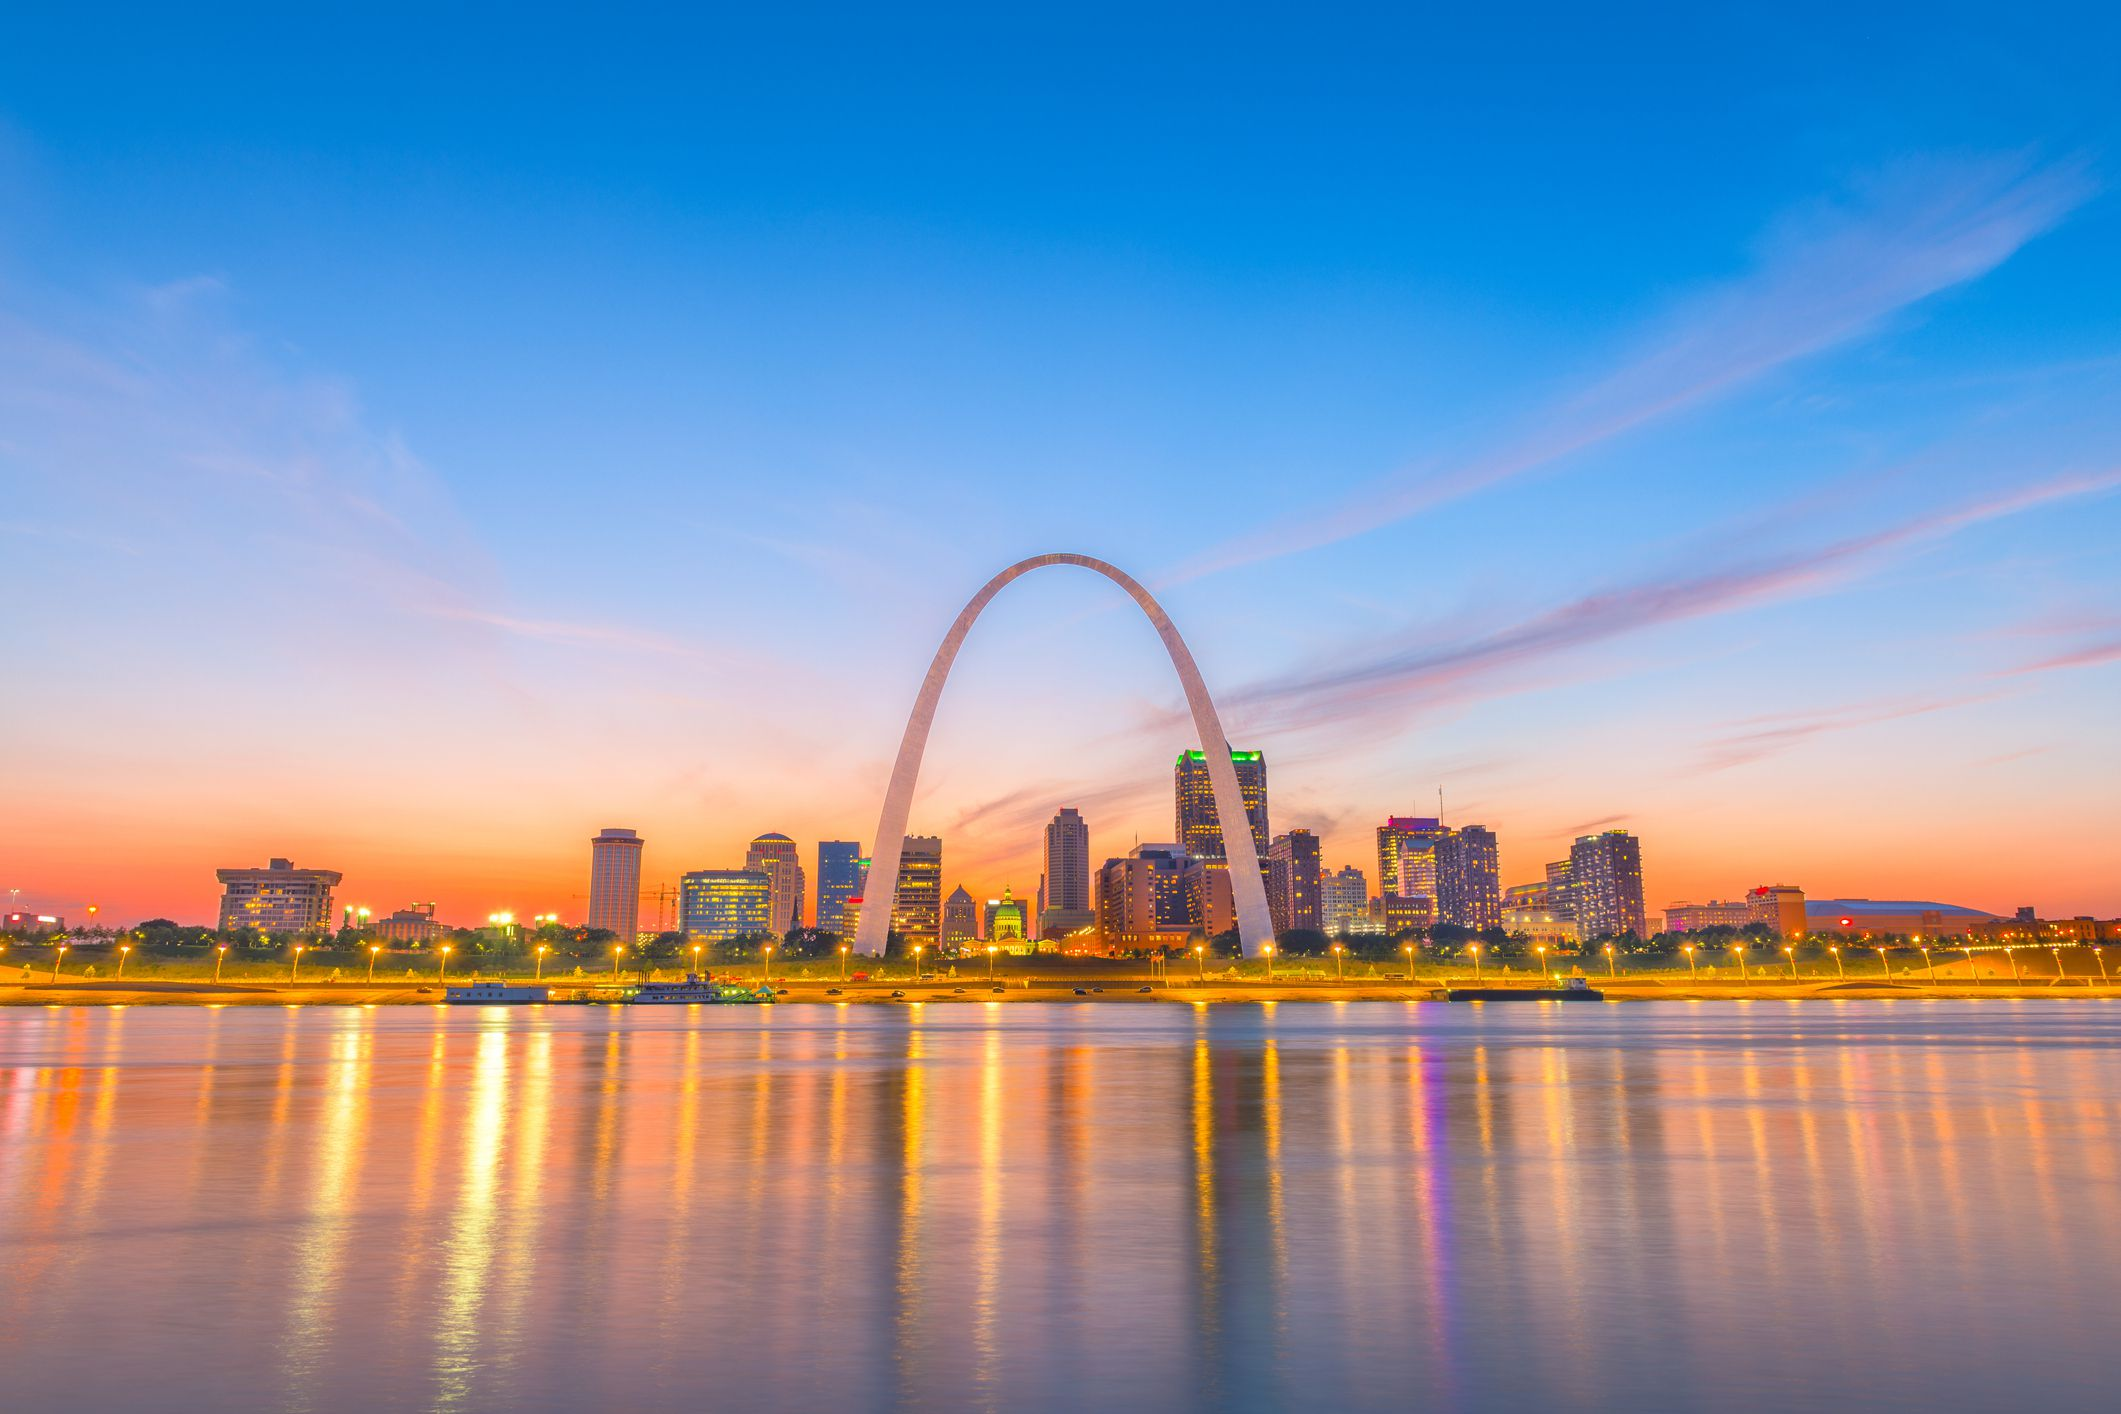 December in St. Louis: Weather and Event Guide